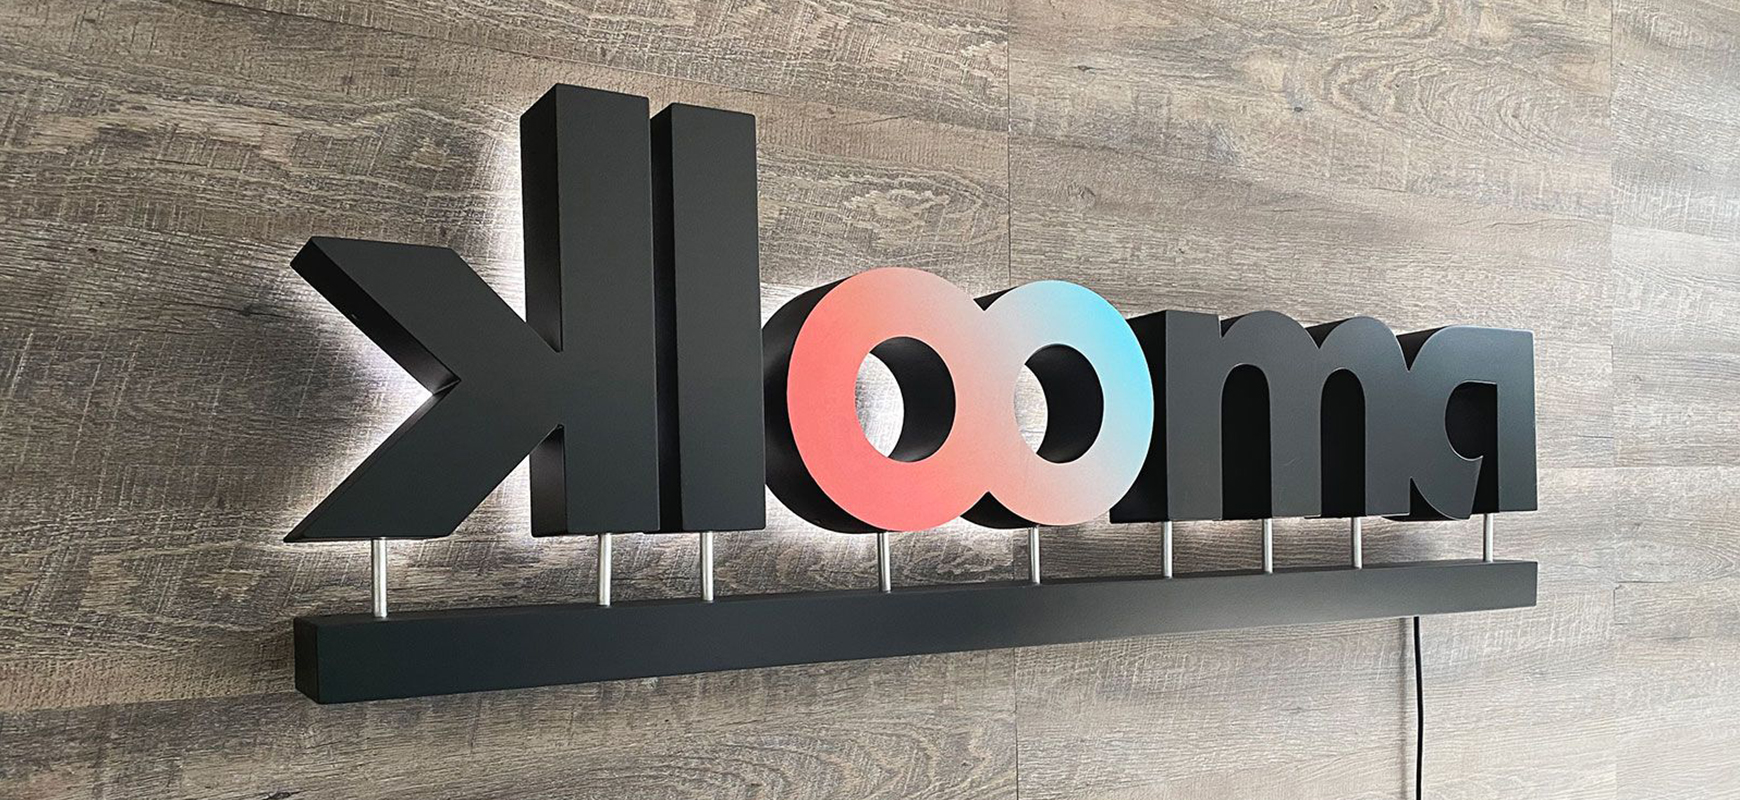 Klooma reverse channel letters made of aluminum and acrylic for office branding